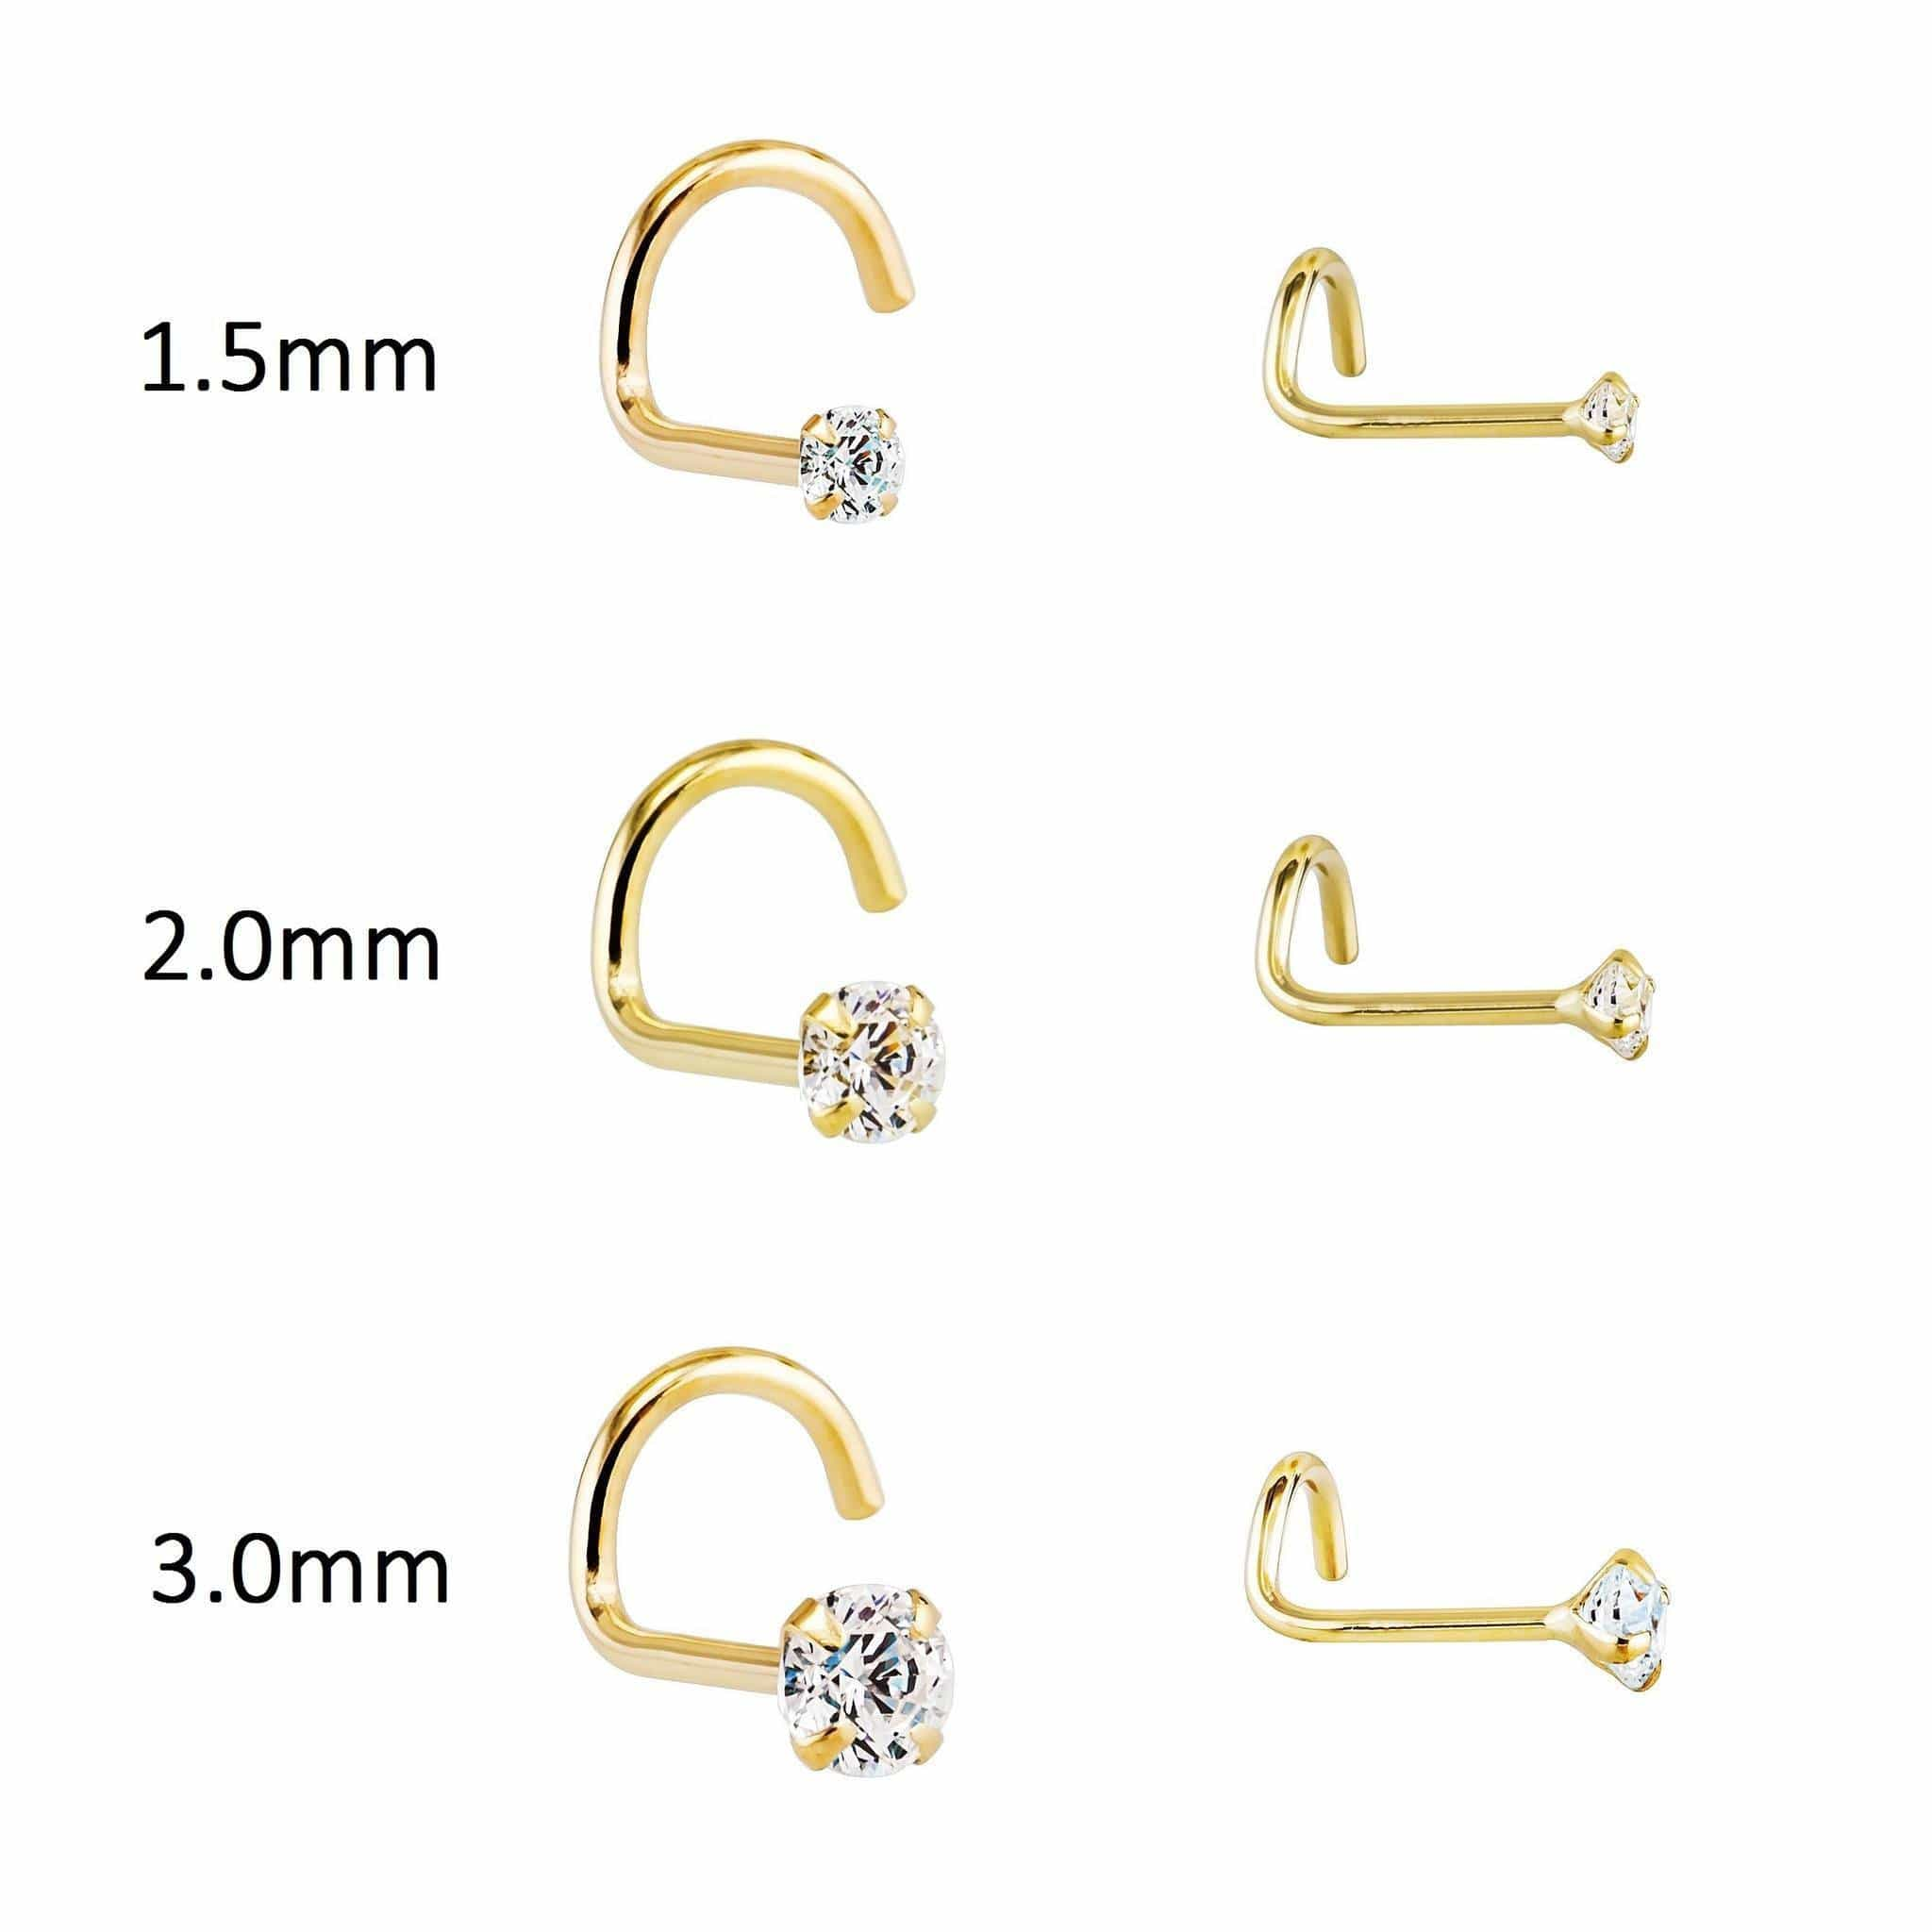 14K Gold 20g Genuine Diamond Nose Stud - Avanti Body Jewelry  - 2